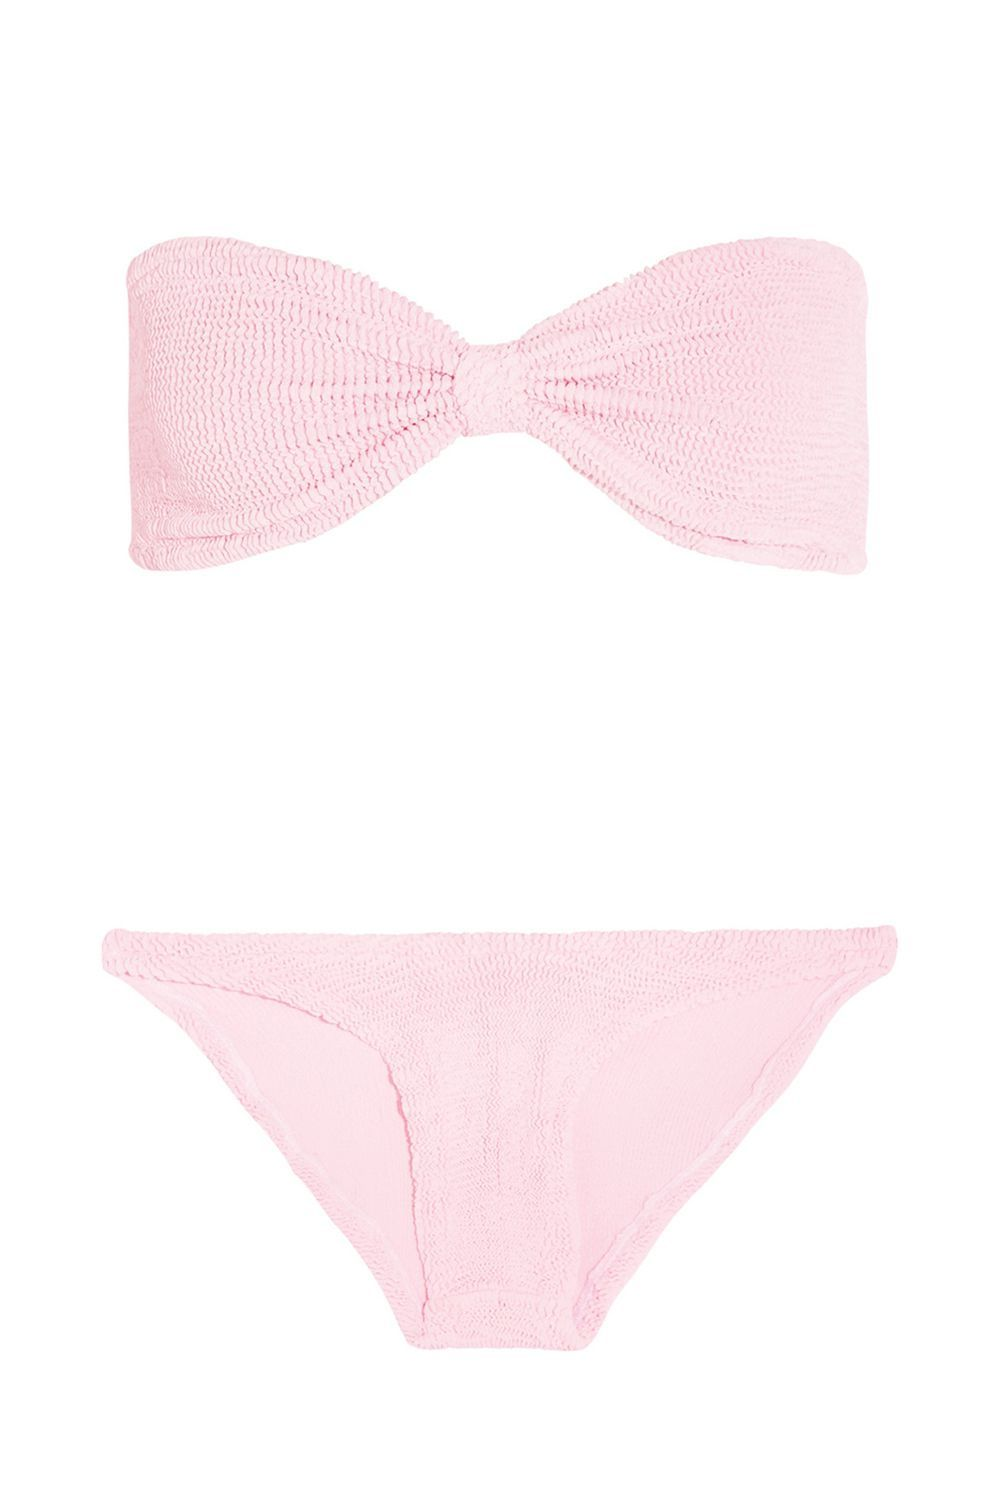 Best for Those Who Love Color Seersucker Bandeau Bikini Hunza G net-a-porter.com $180.00 SHOP IT Both Rosie Huntington-Whiteley and Bella Hadid love Hunza G's seersucker swimsuits and I know why. The stretchy material is full of give and so soft against your skin.